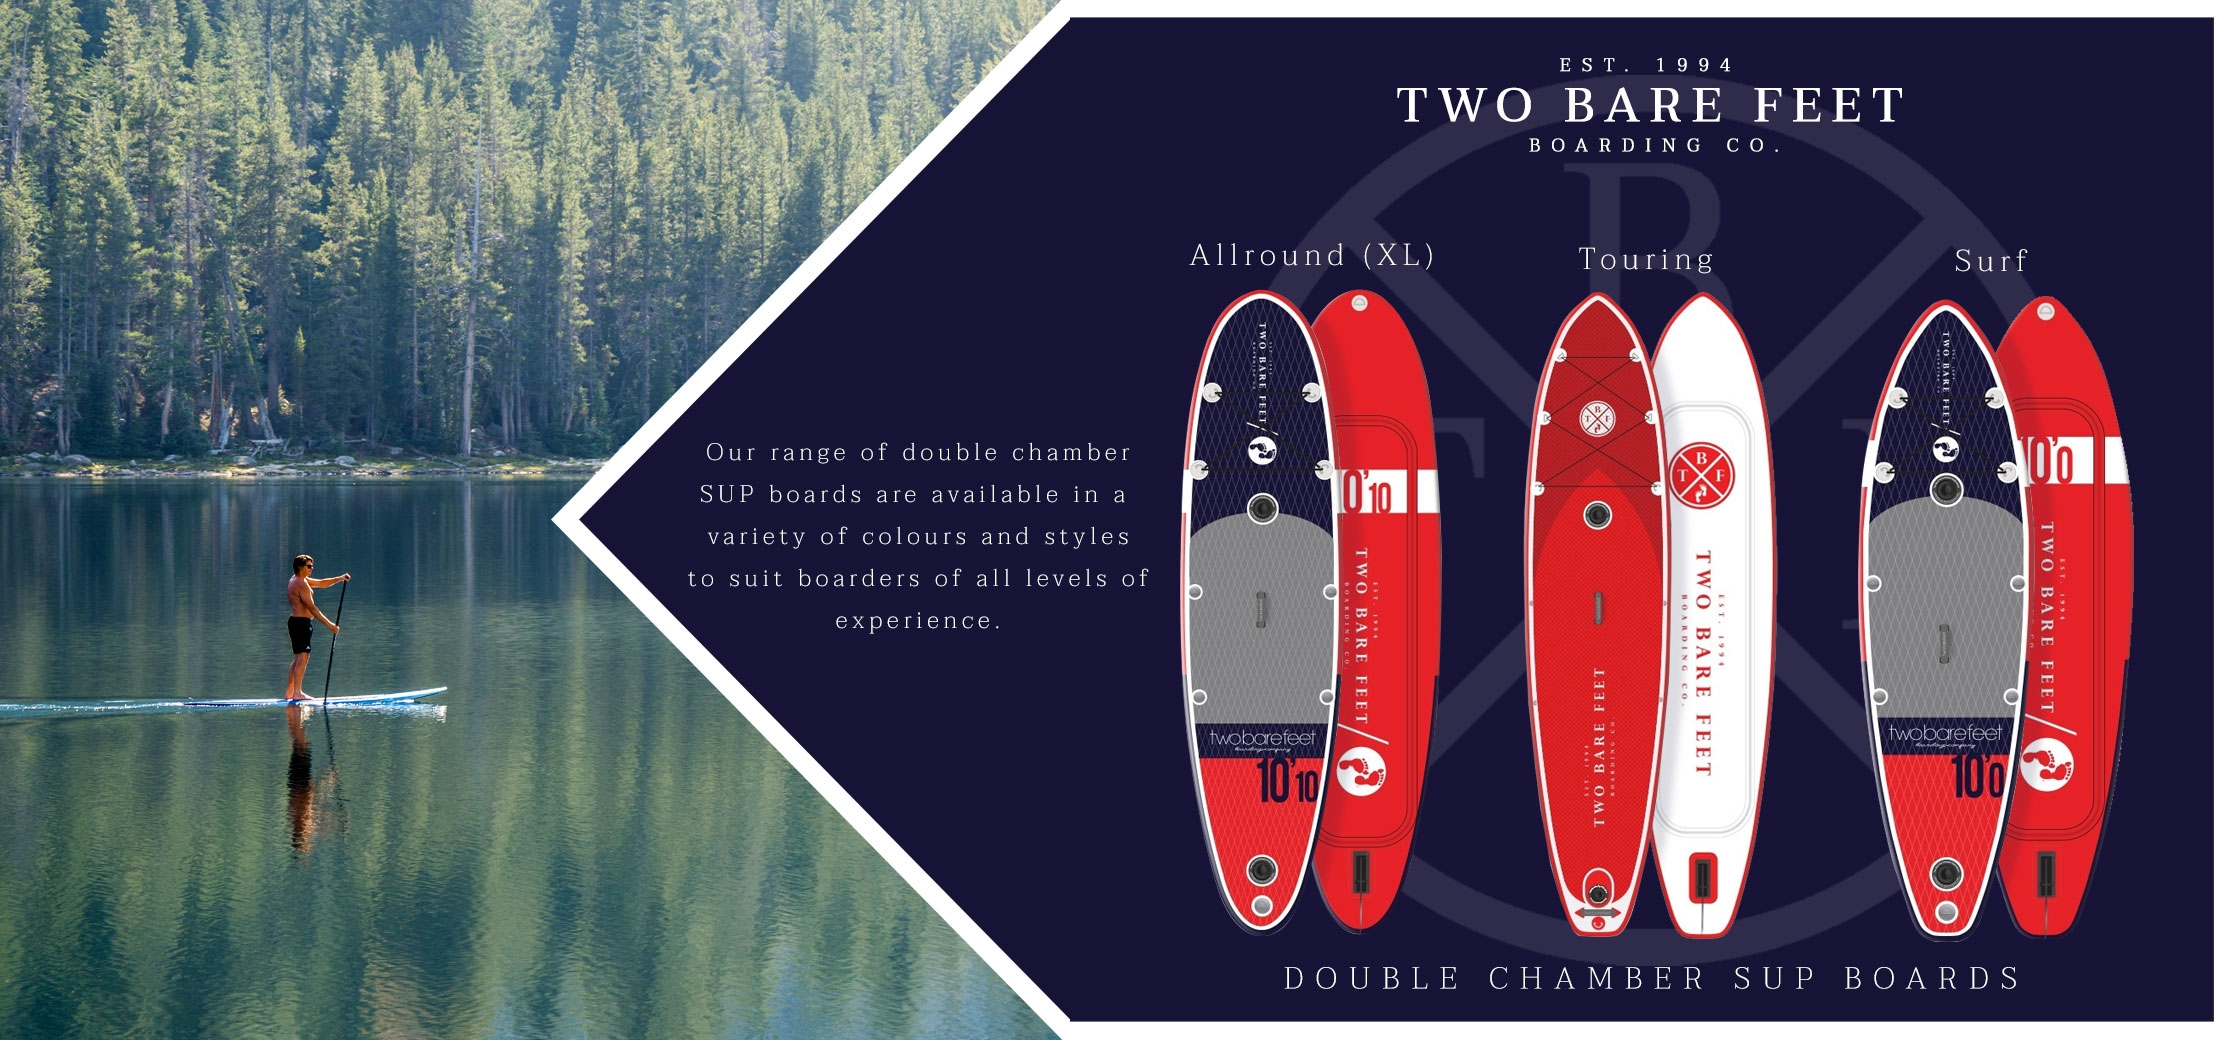 Two Bare Feet double chamber SUPs allround touring surf